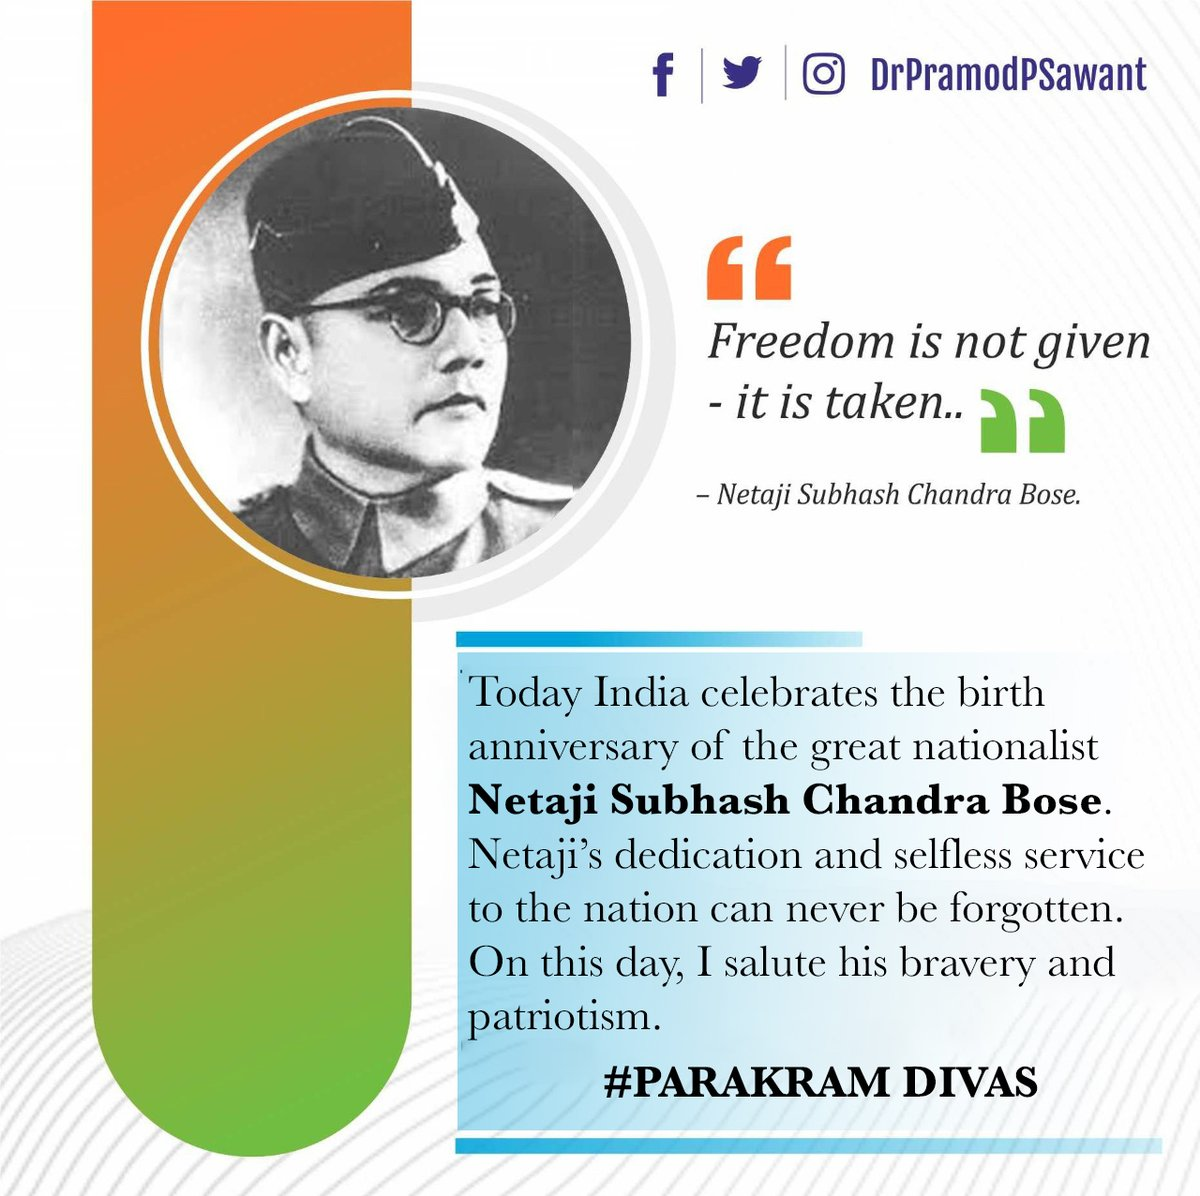 Today India celebrates the birth anniversary of the great nationalist Netaji #SubhasChandraBose. Netaji's dedication and selfless service to the nation can never be forgotten. On this day, I salute his bravery and patriotism. #ParakramDivas